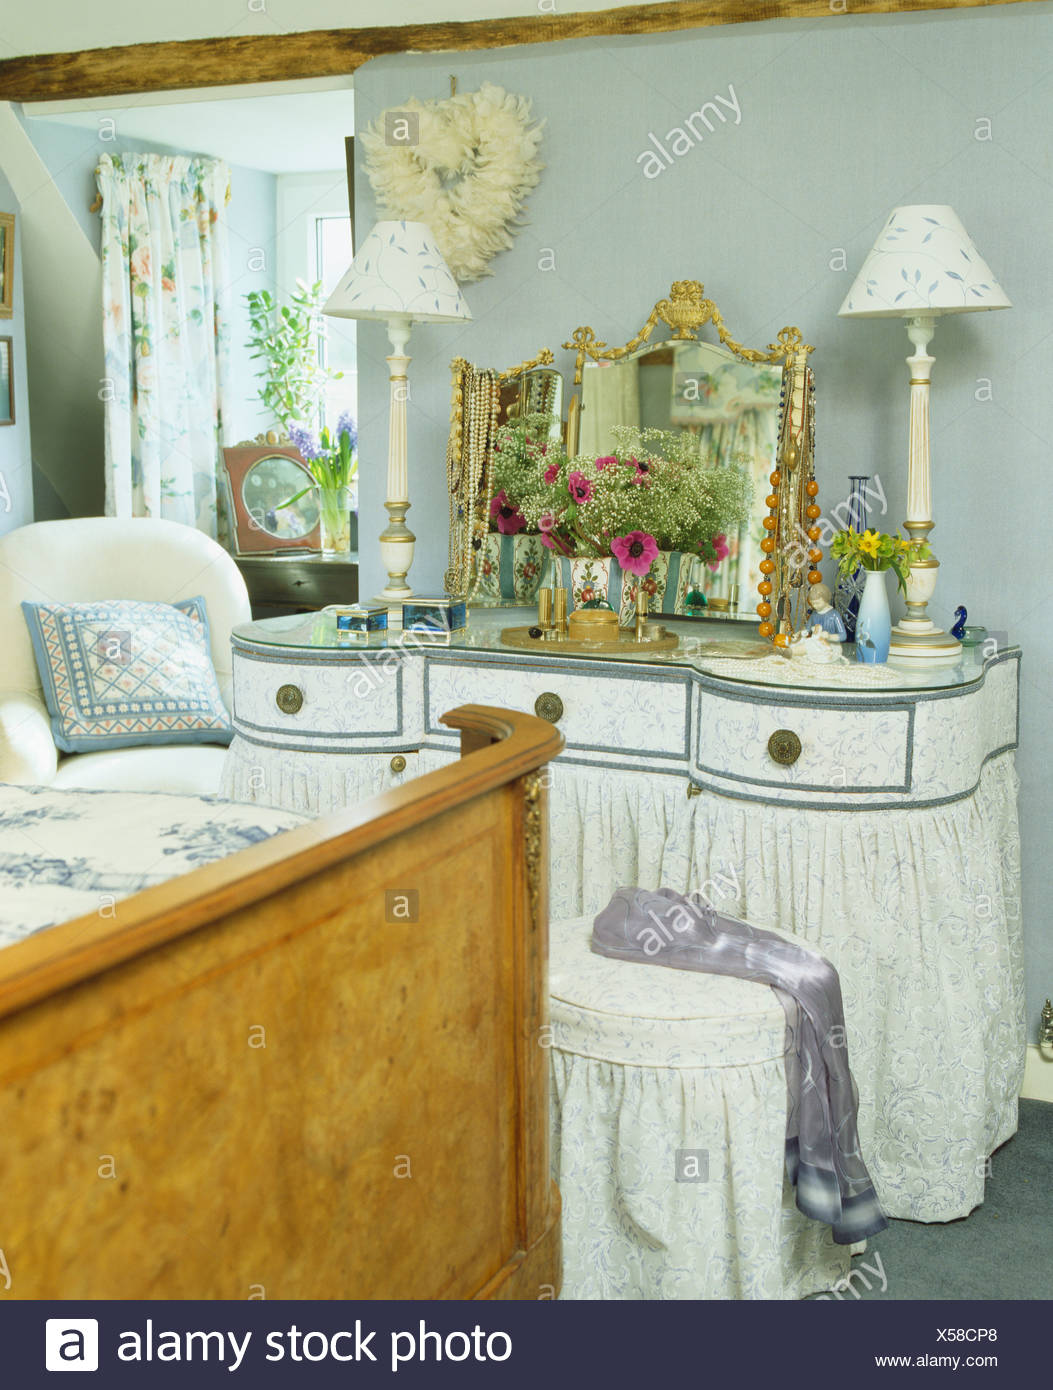 Blue Gray Cottage Bedroom With White Lamps On Dressing Table With Skirted Bernard Thorpe Drapes And Antique Mirror Stock Photo Alamy